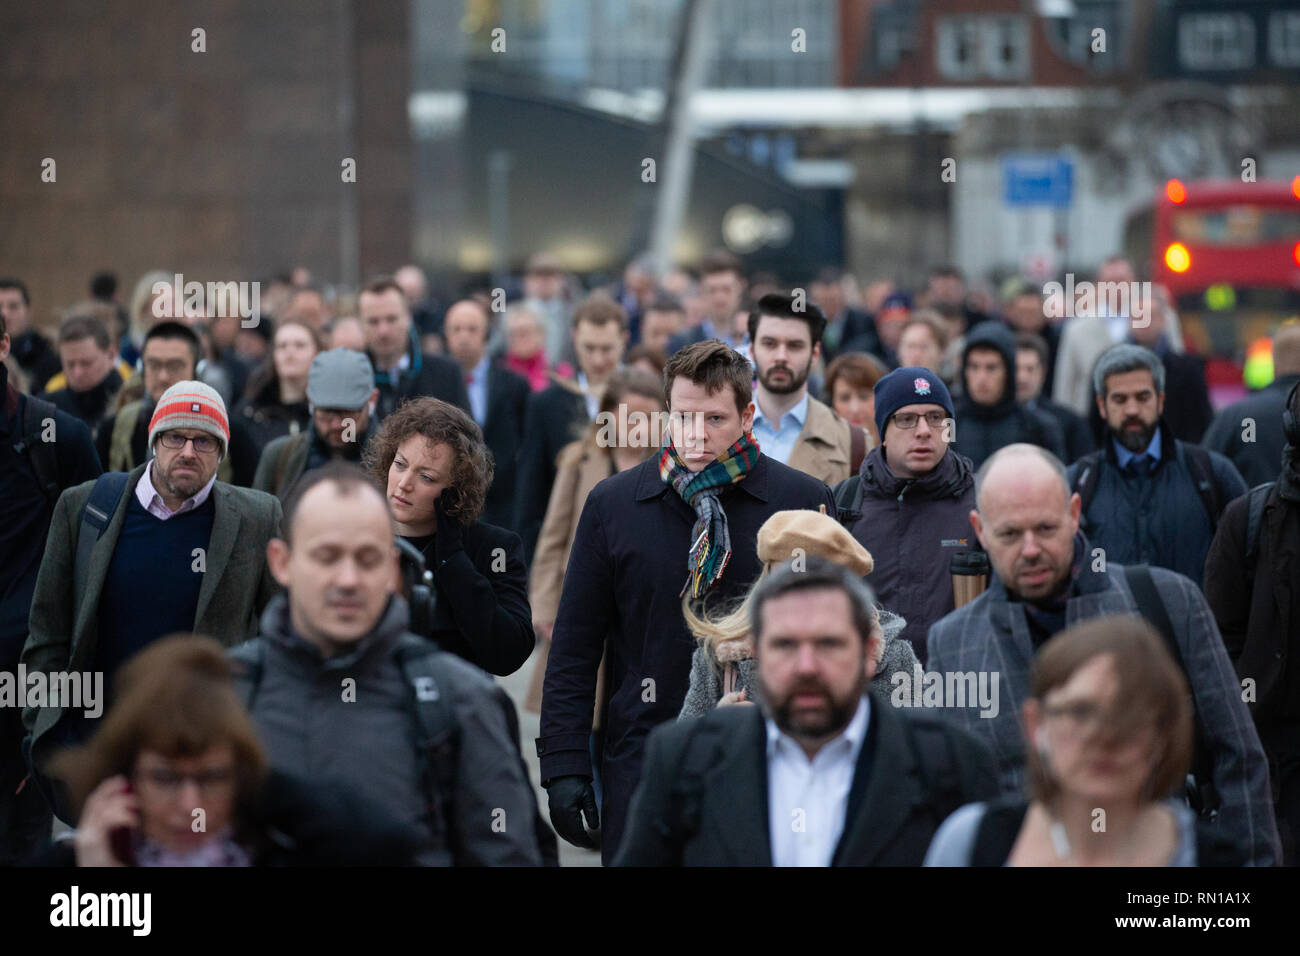 Commuters make their way across London Bridge on 'Blue Monday', 18th January, traditionally the most depressing day of the year. - Stock Image